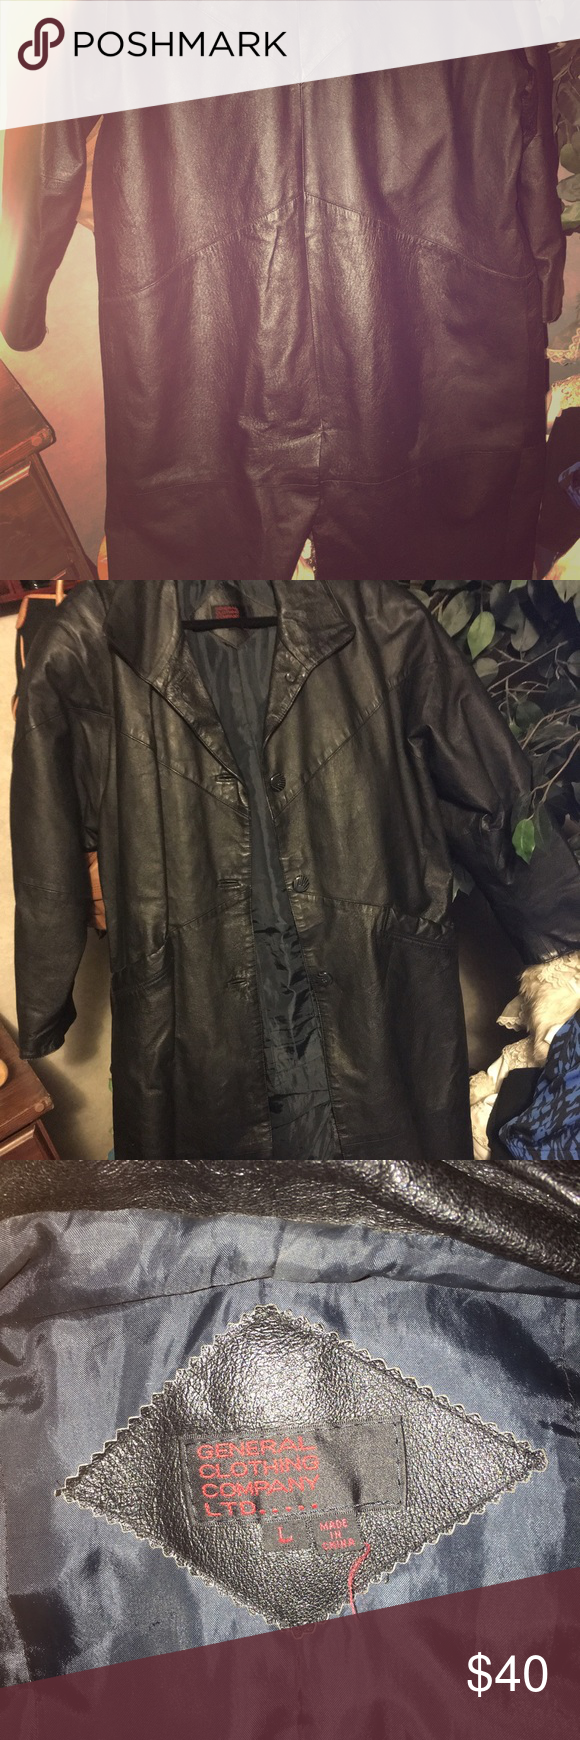 Leather Trench Coat Large Leather Trench coat. Very good shape. Have worn maybe a hand full of times. Needs a good home. 💕💞 general clothing company ltd Jackets & Coats Trench Coats